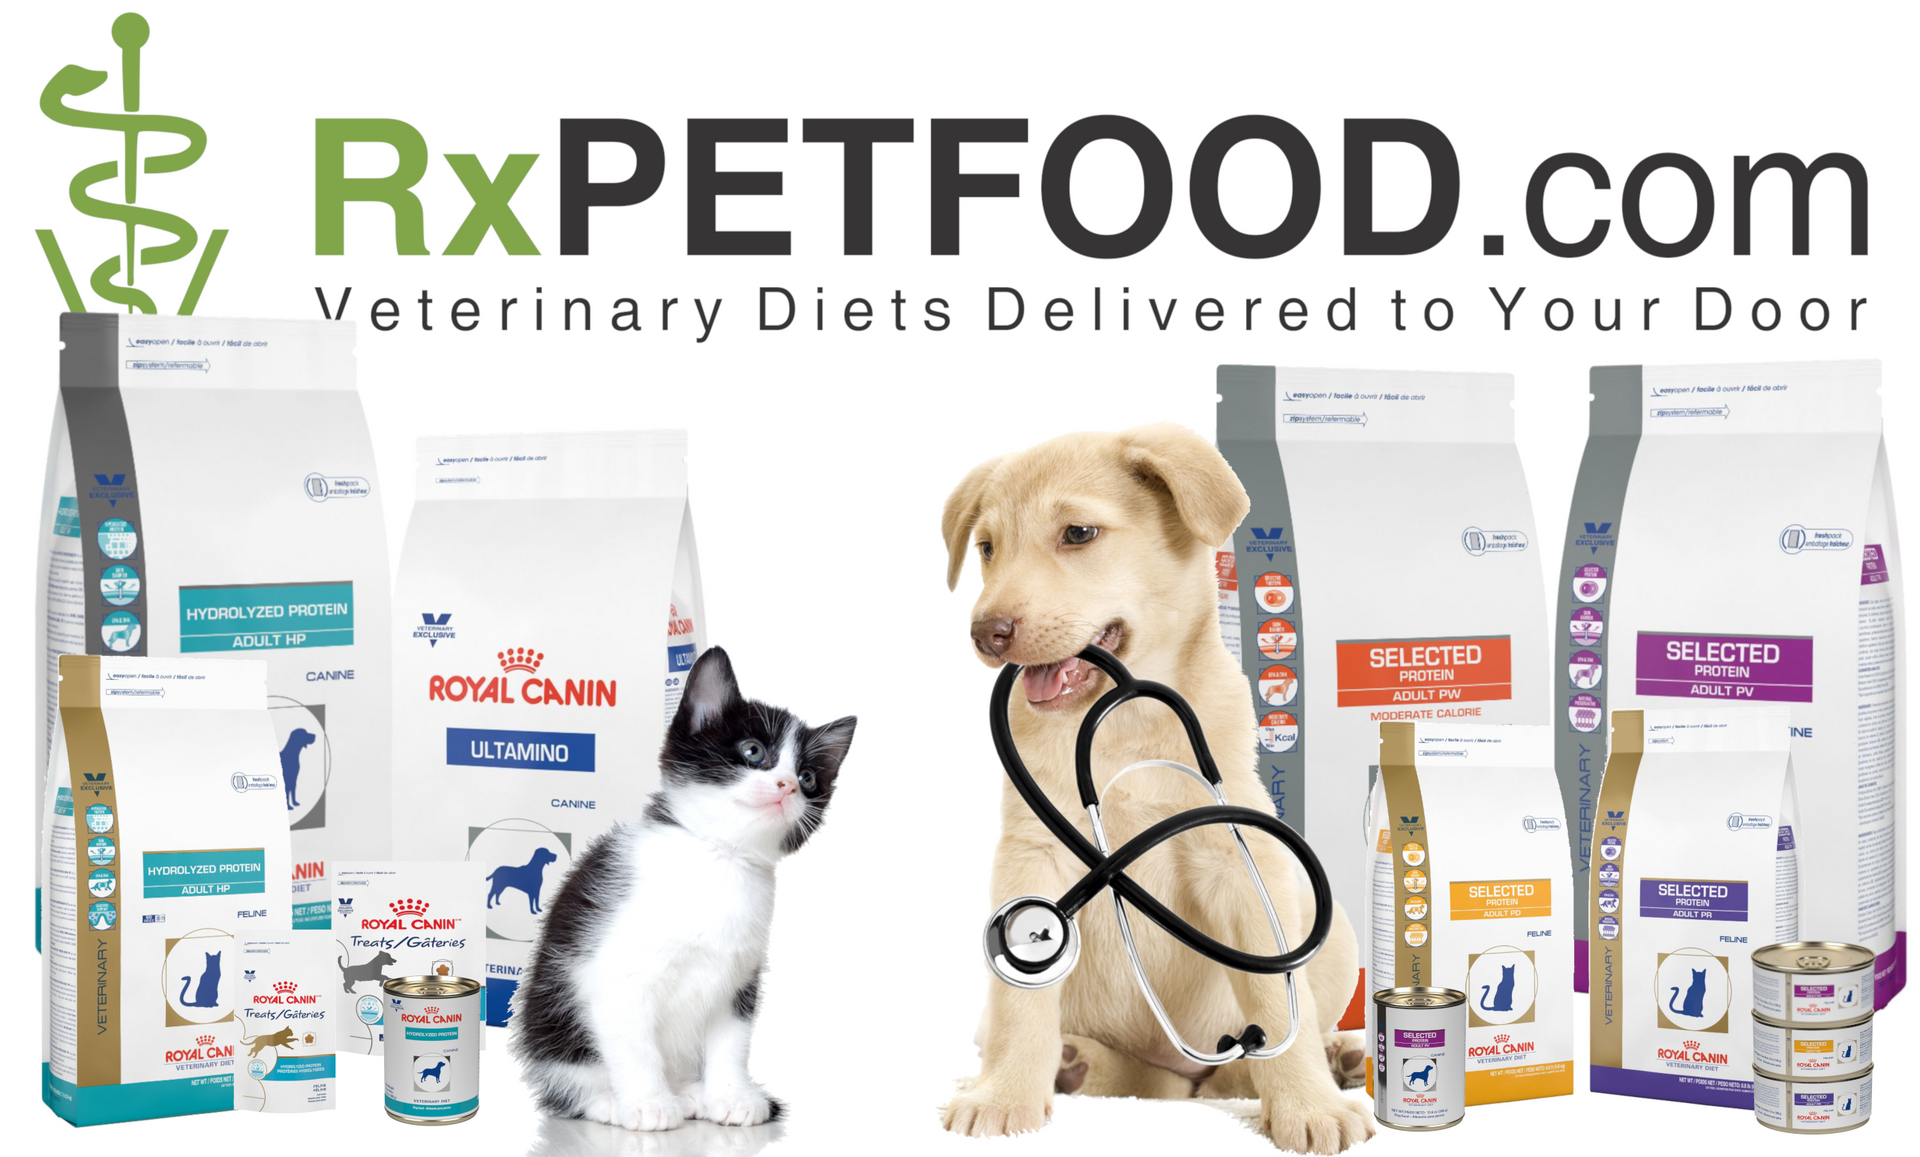 RxPetFood com - Veterinary Diets Delivered to Your Door